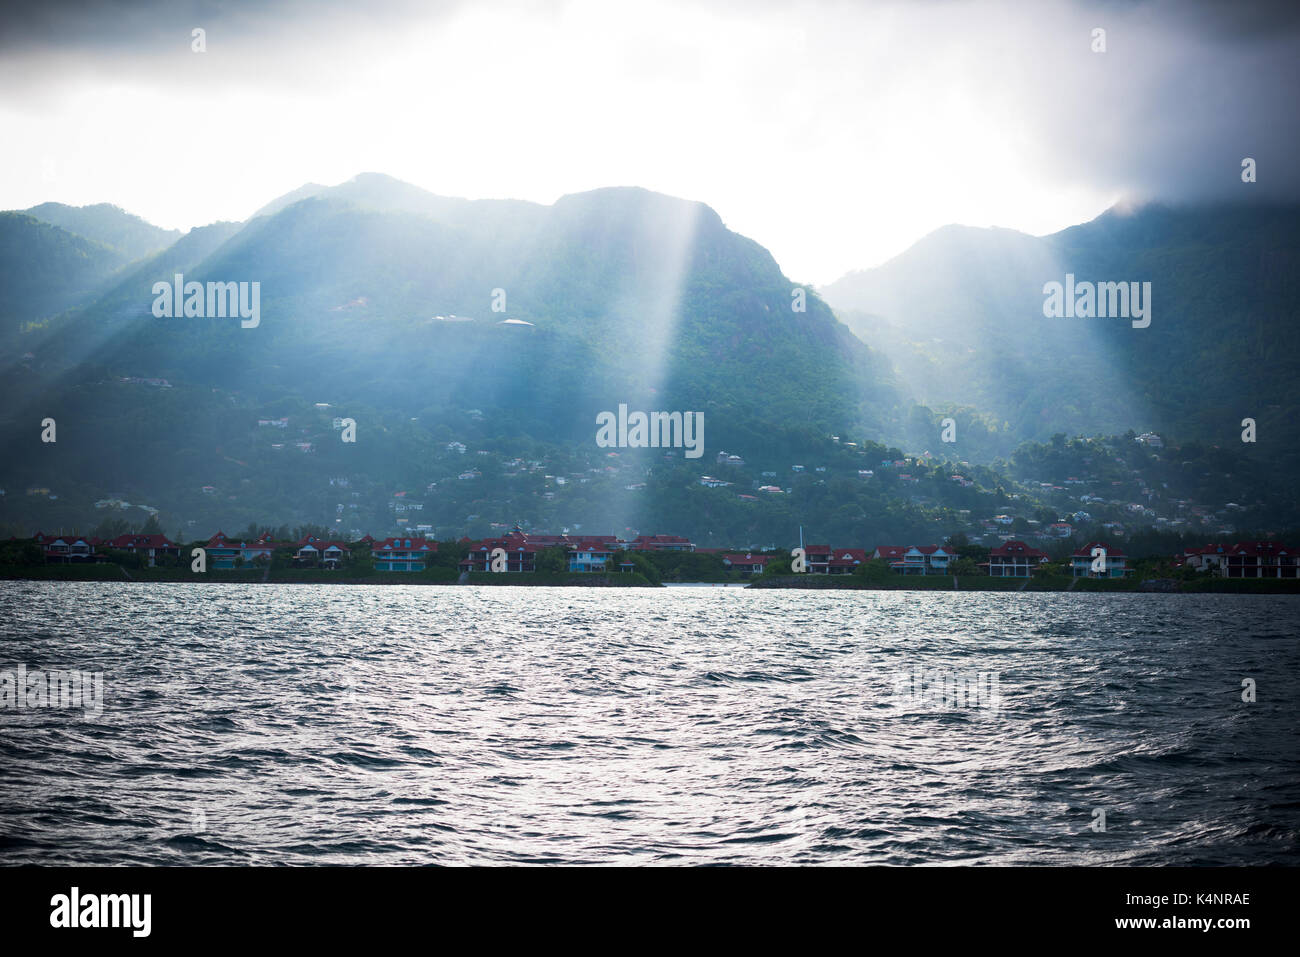 Coastline of Mahe island, Seychelles with sunlight and mountains. View from the boat Stock Photo